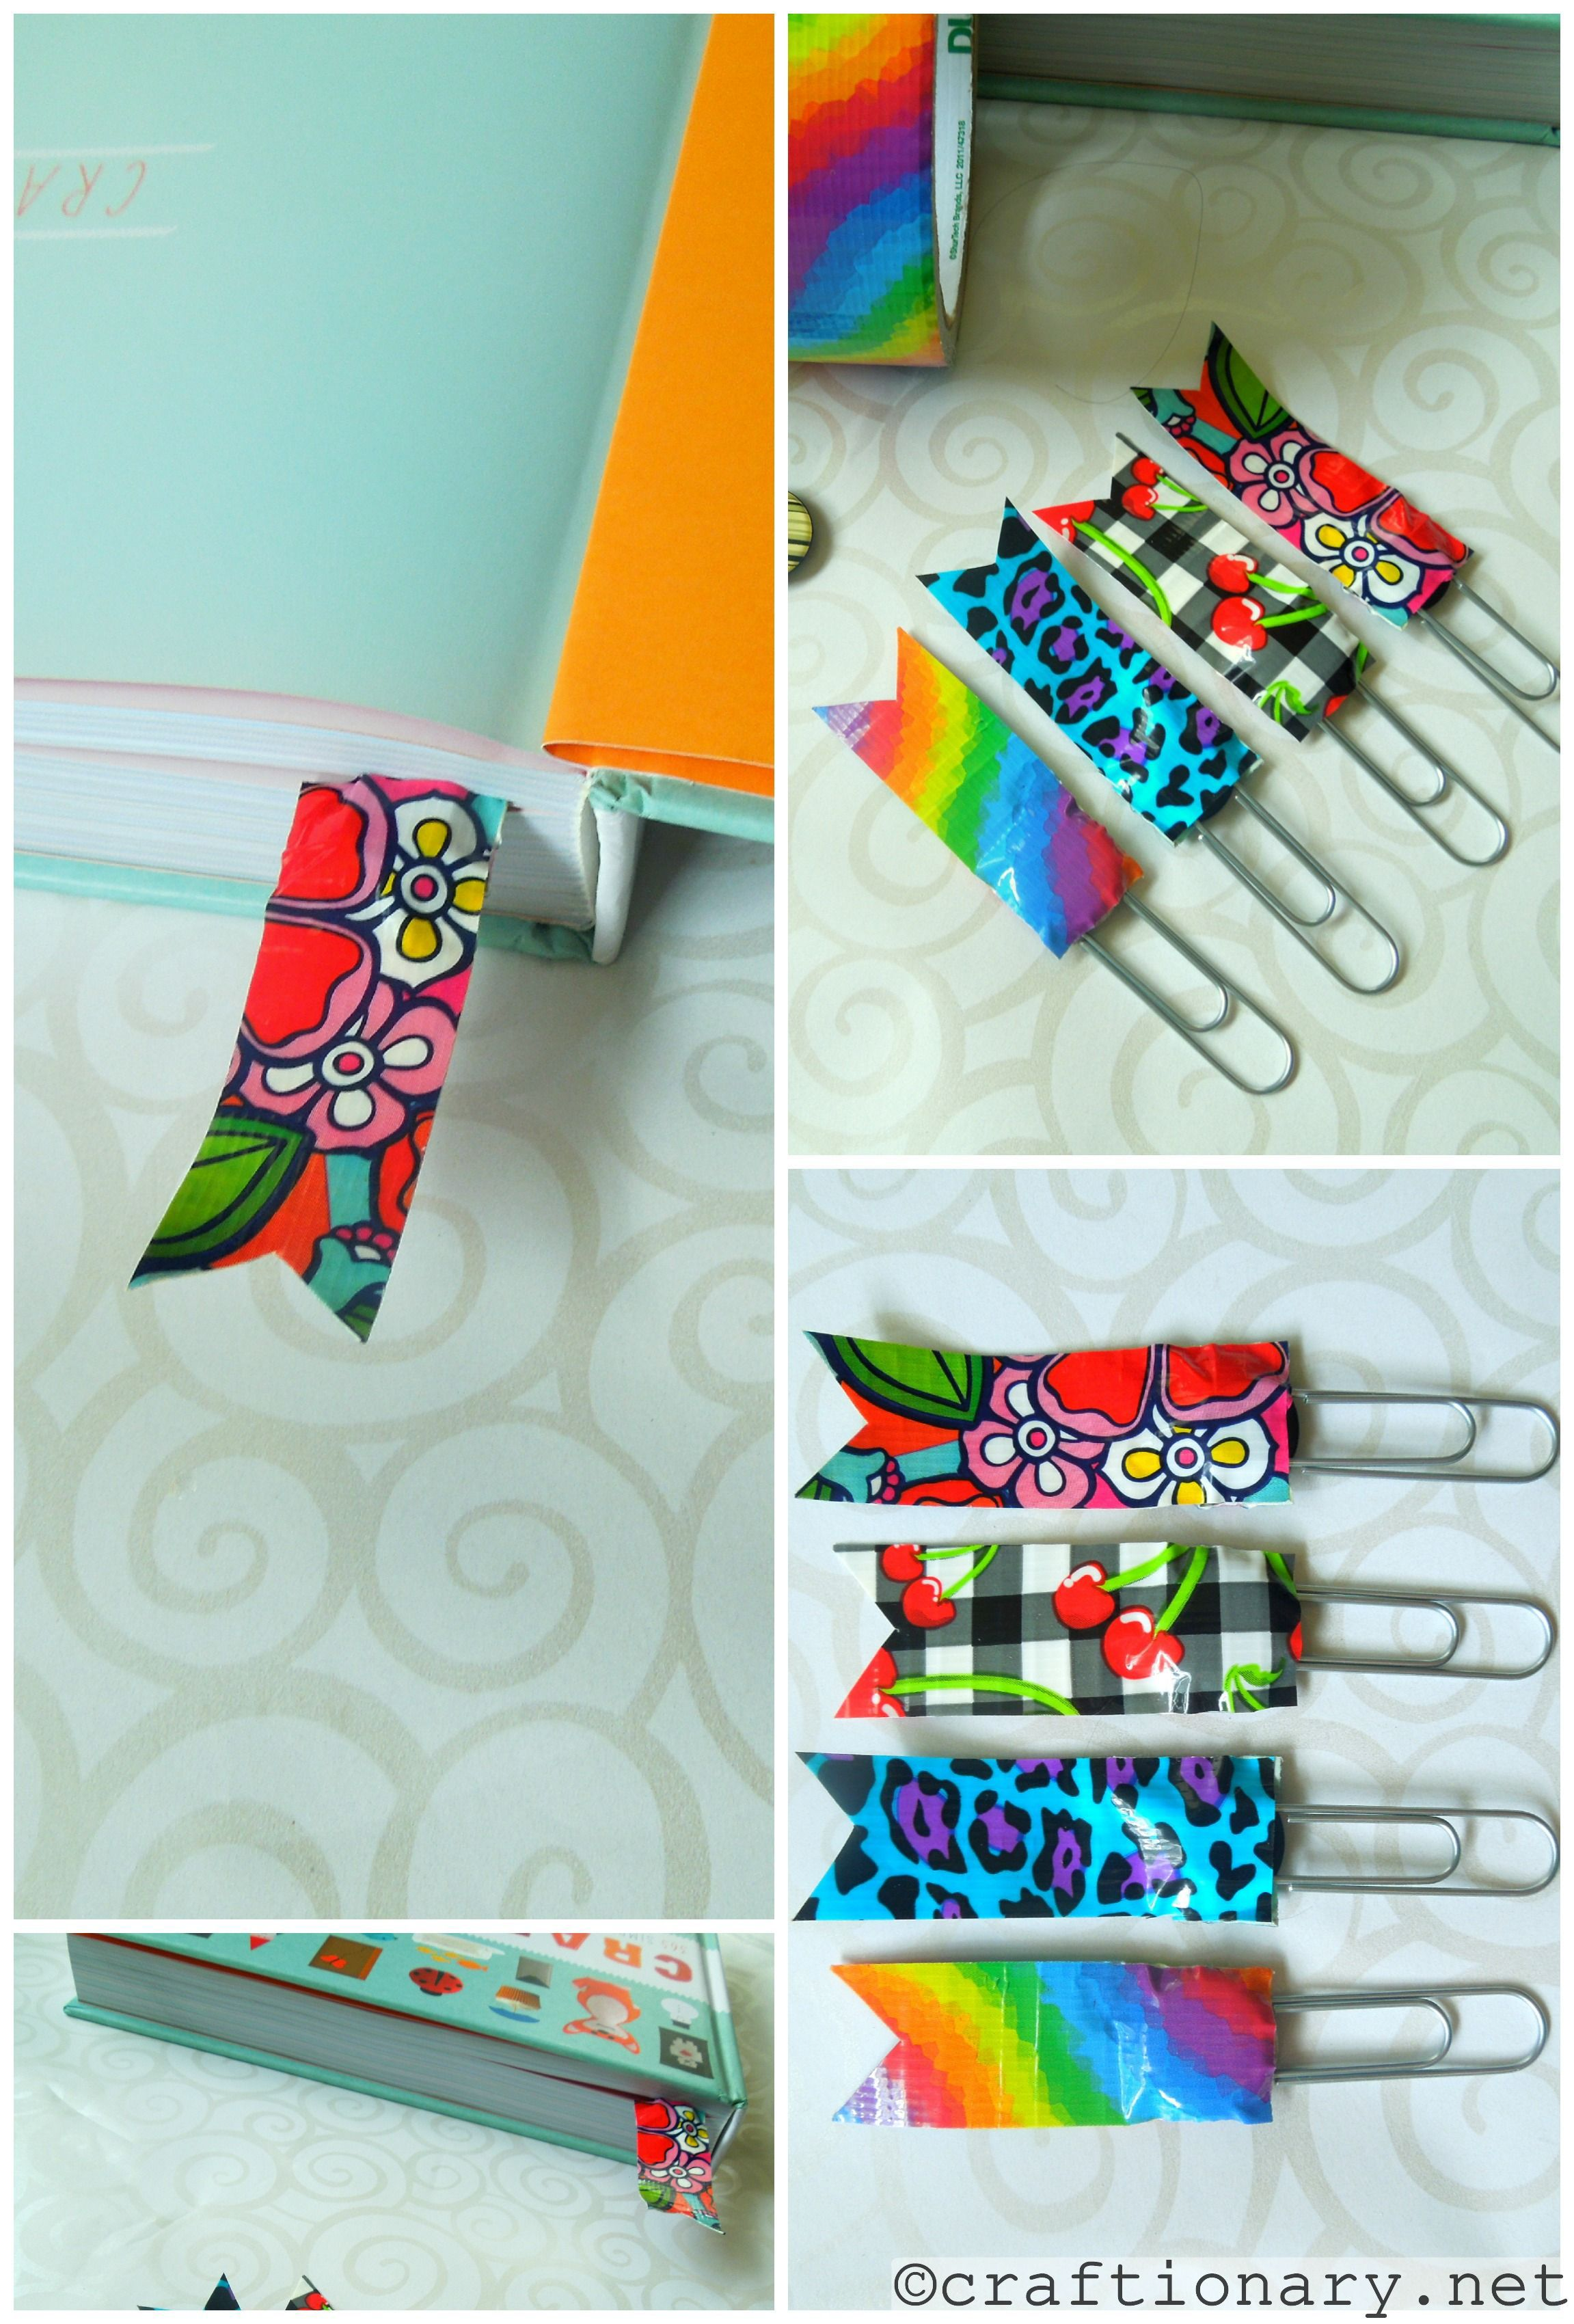 Diy duct tape ideas make simple crafts bookmark ideas How to make a simple bookmark